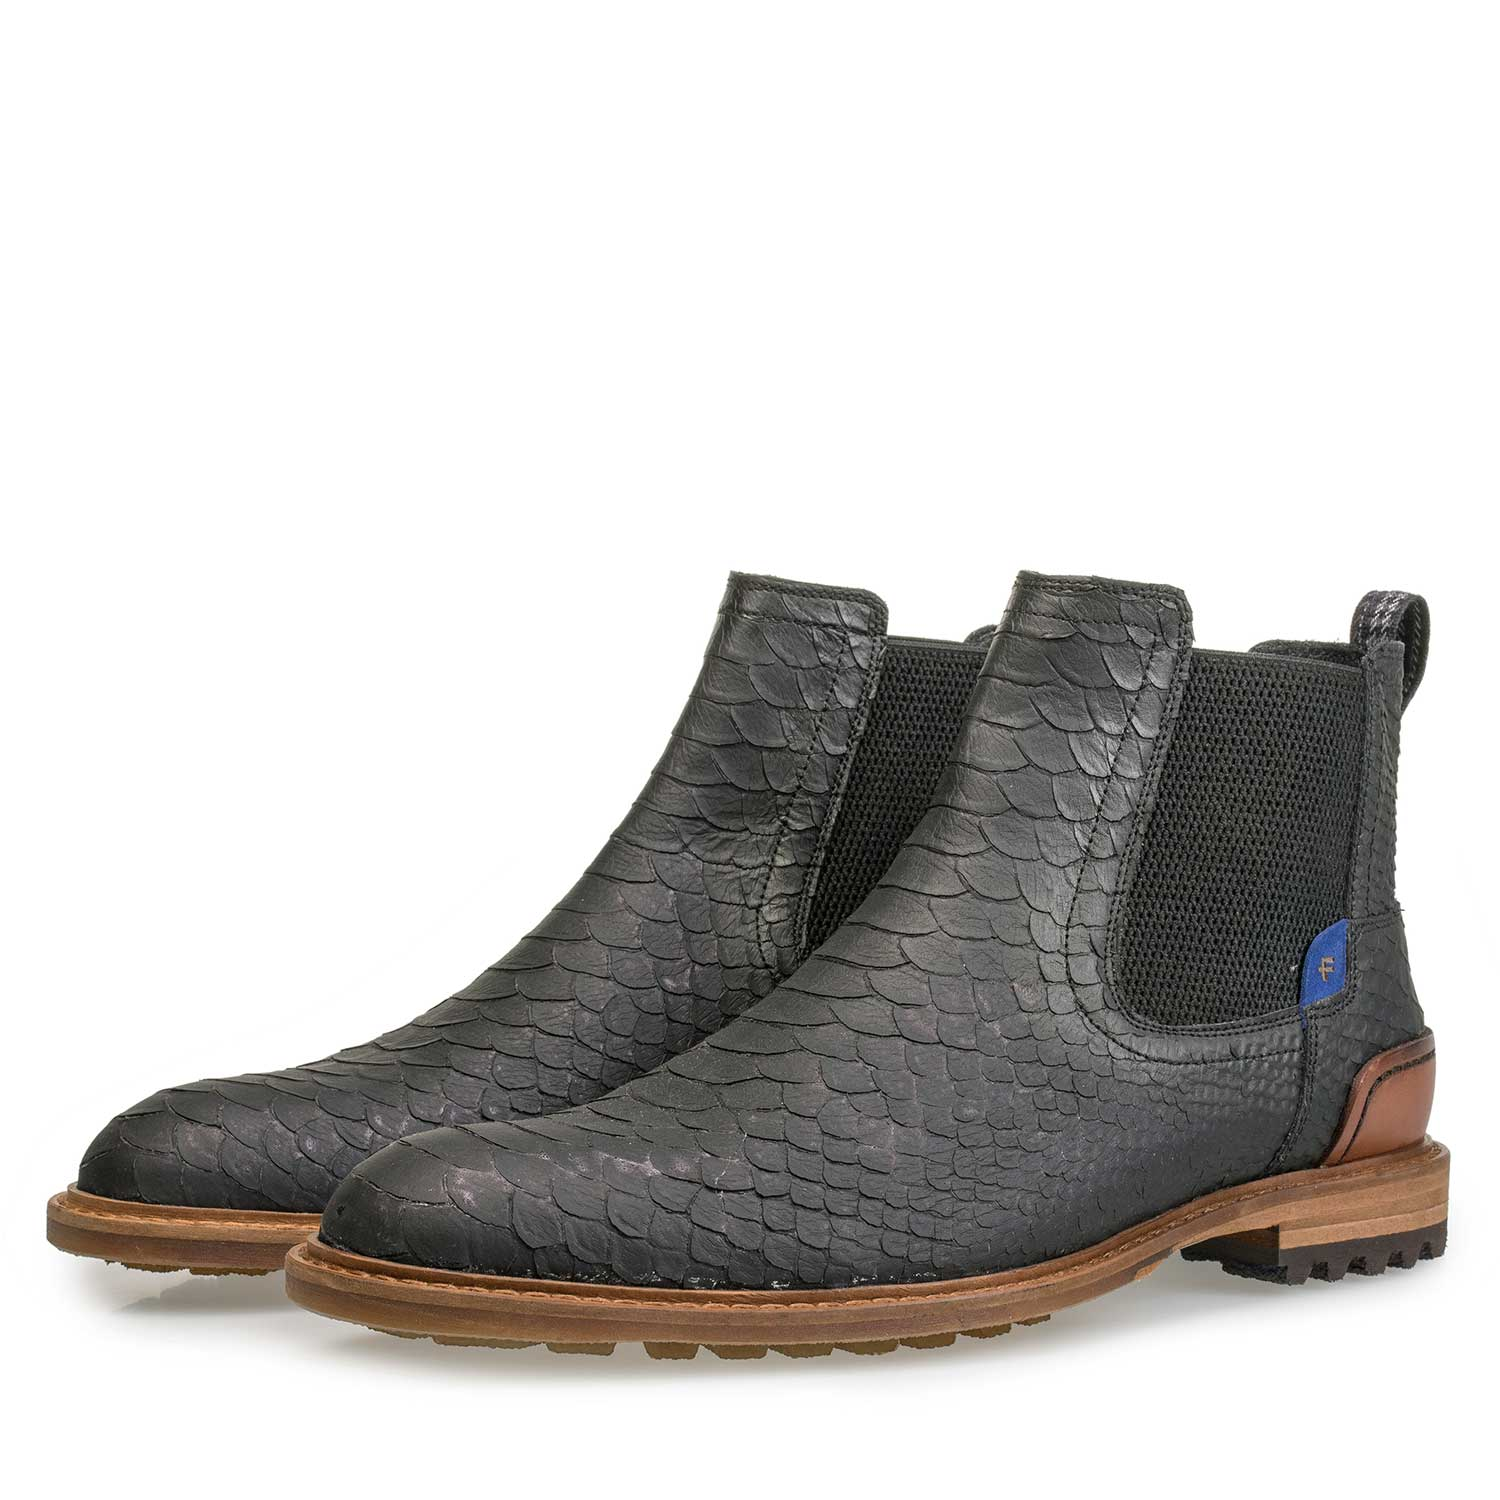 10230/11 - Grey leather Chelsea boot with snake print